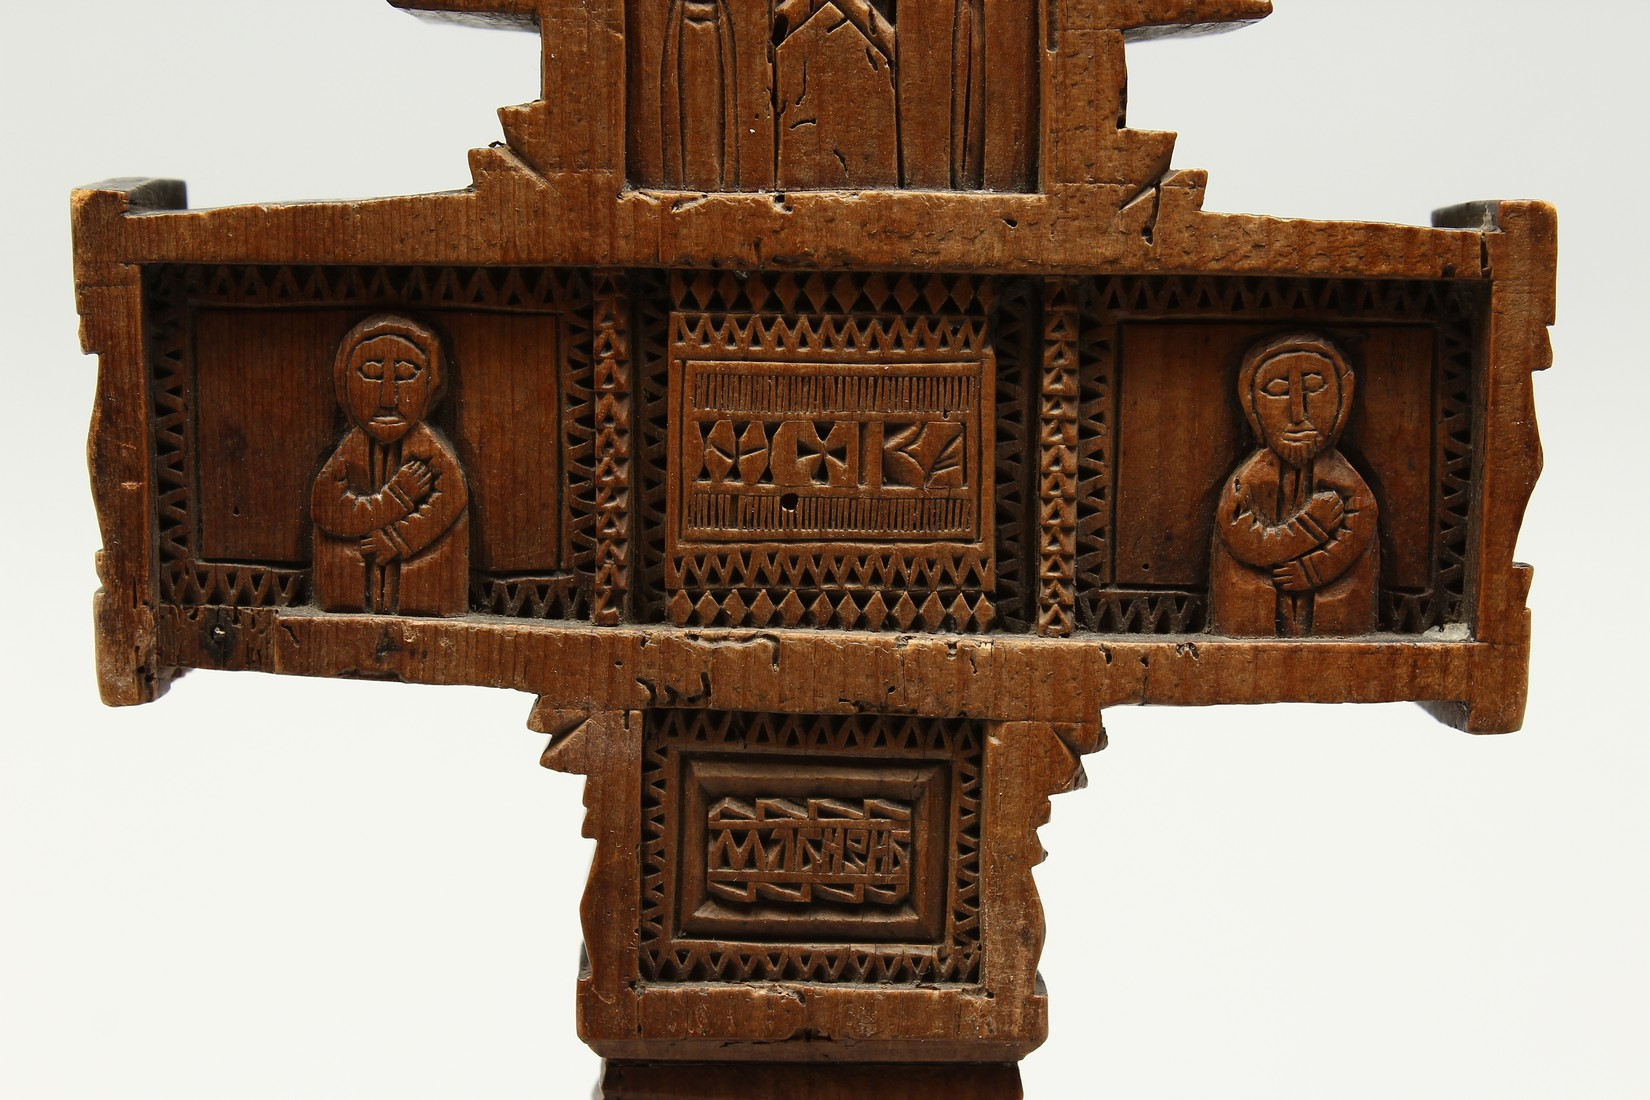 AN 18TH CENTURY GREEK CARVED WOODEN CROSS. 15ins long. - Image 9 of 11